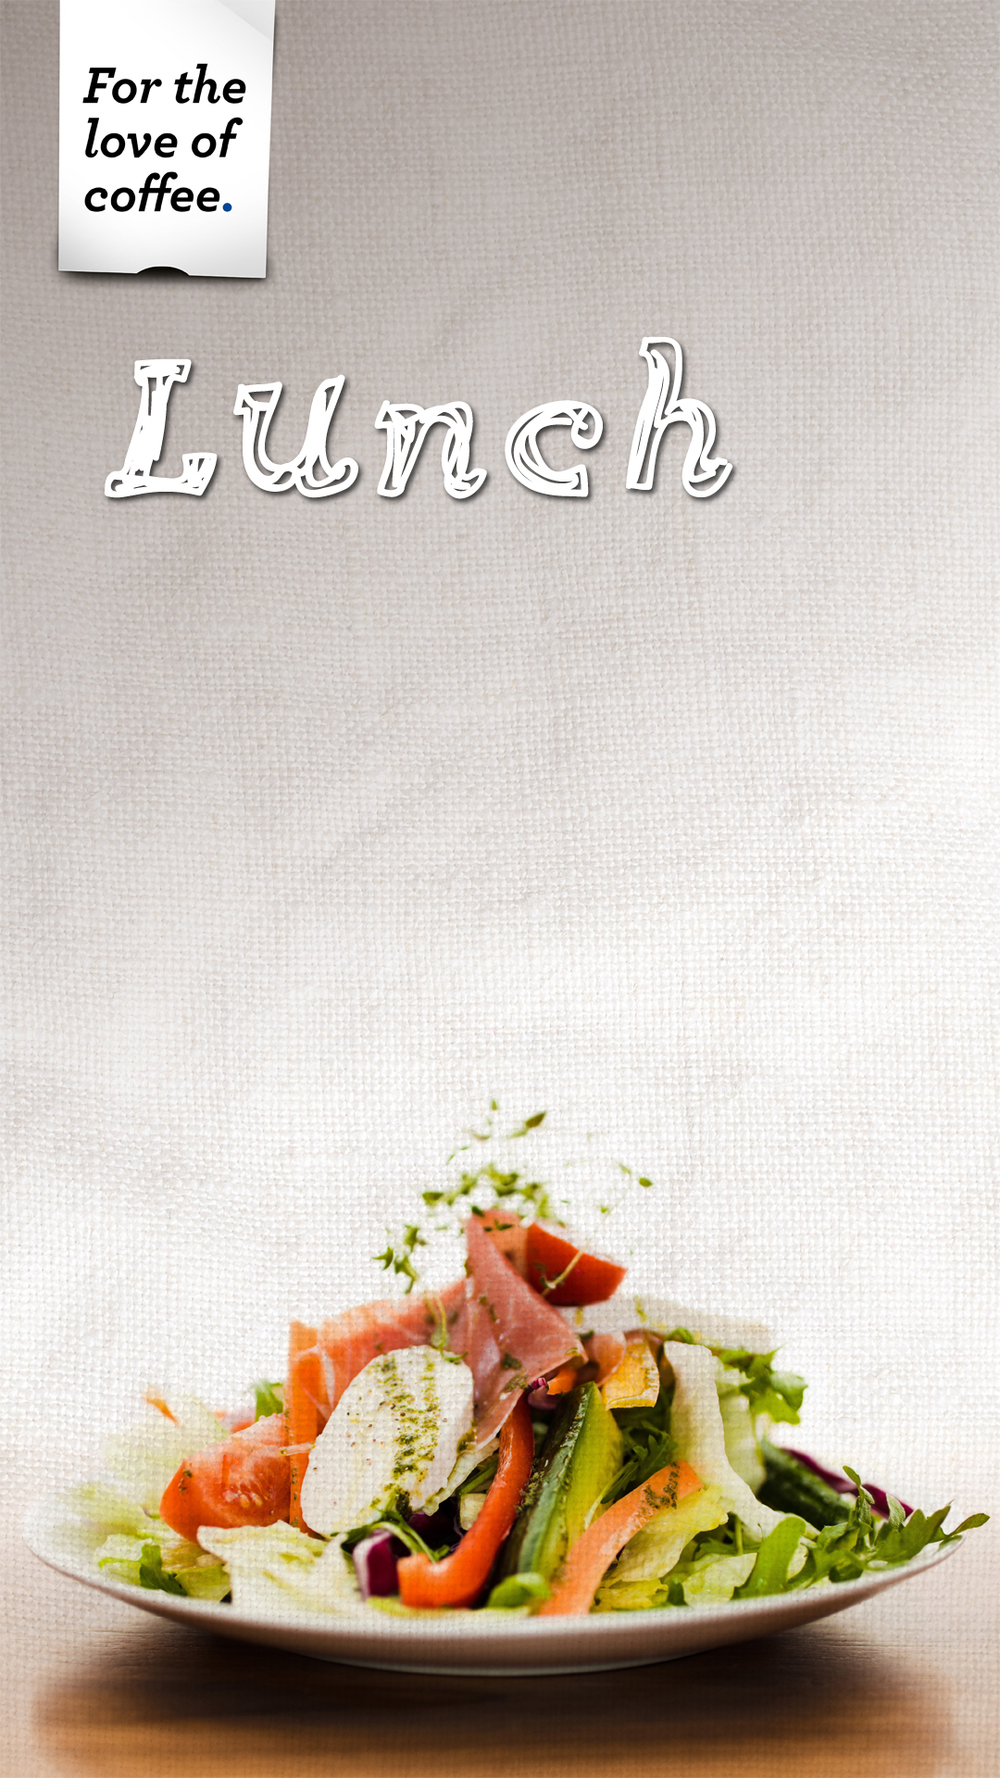 Lunch_REN_1080x1920.jpg